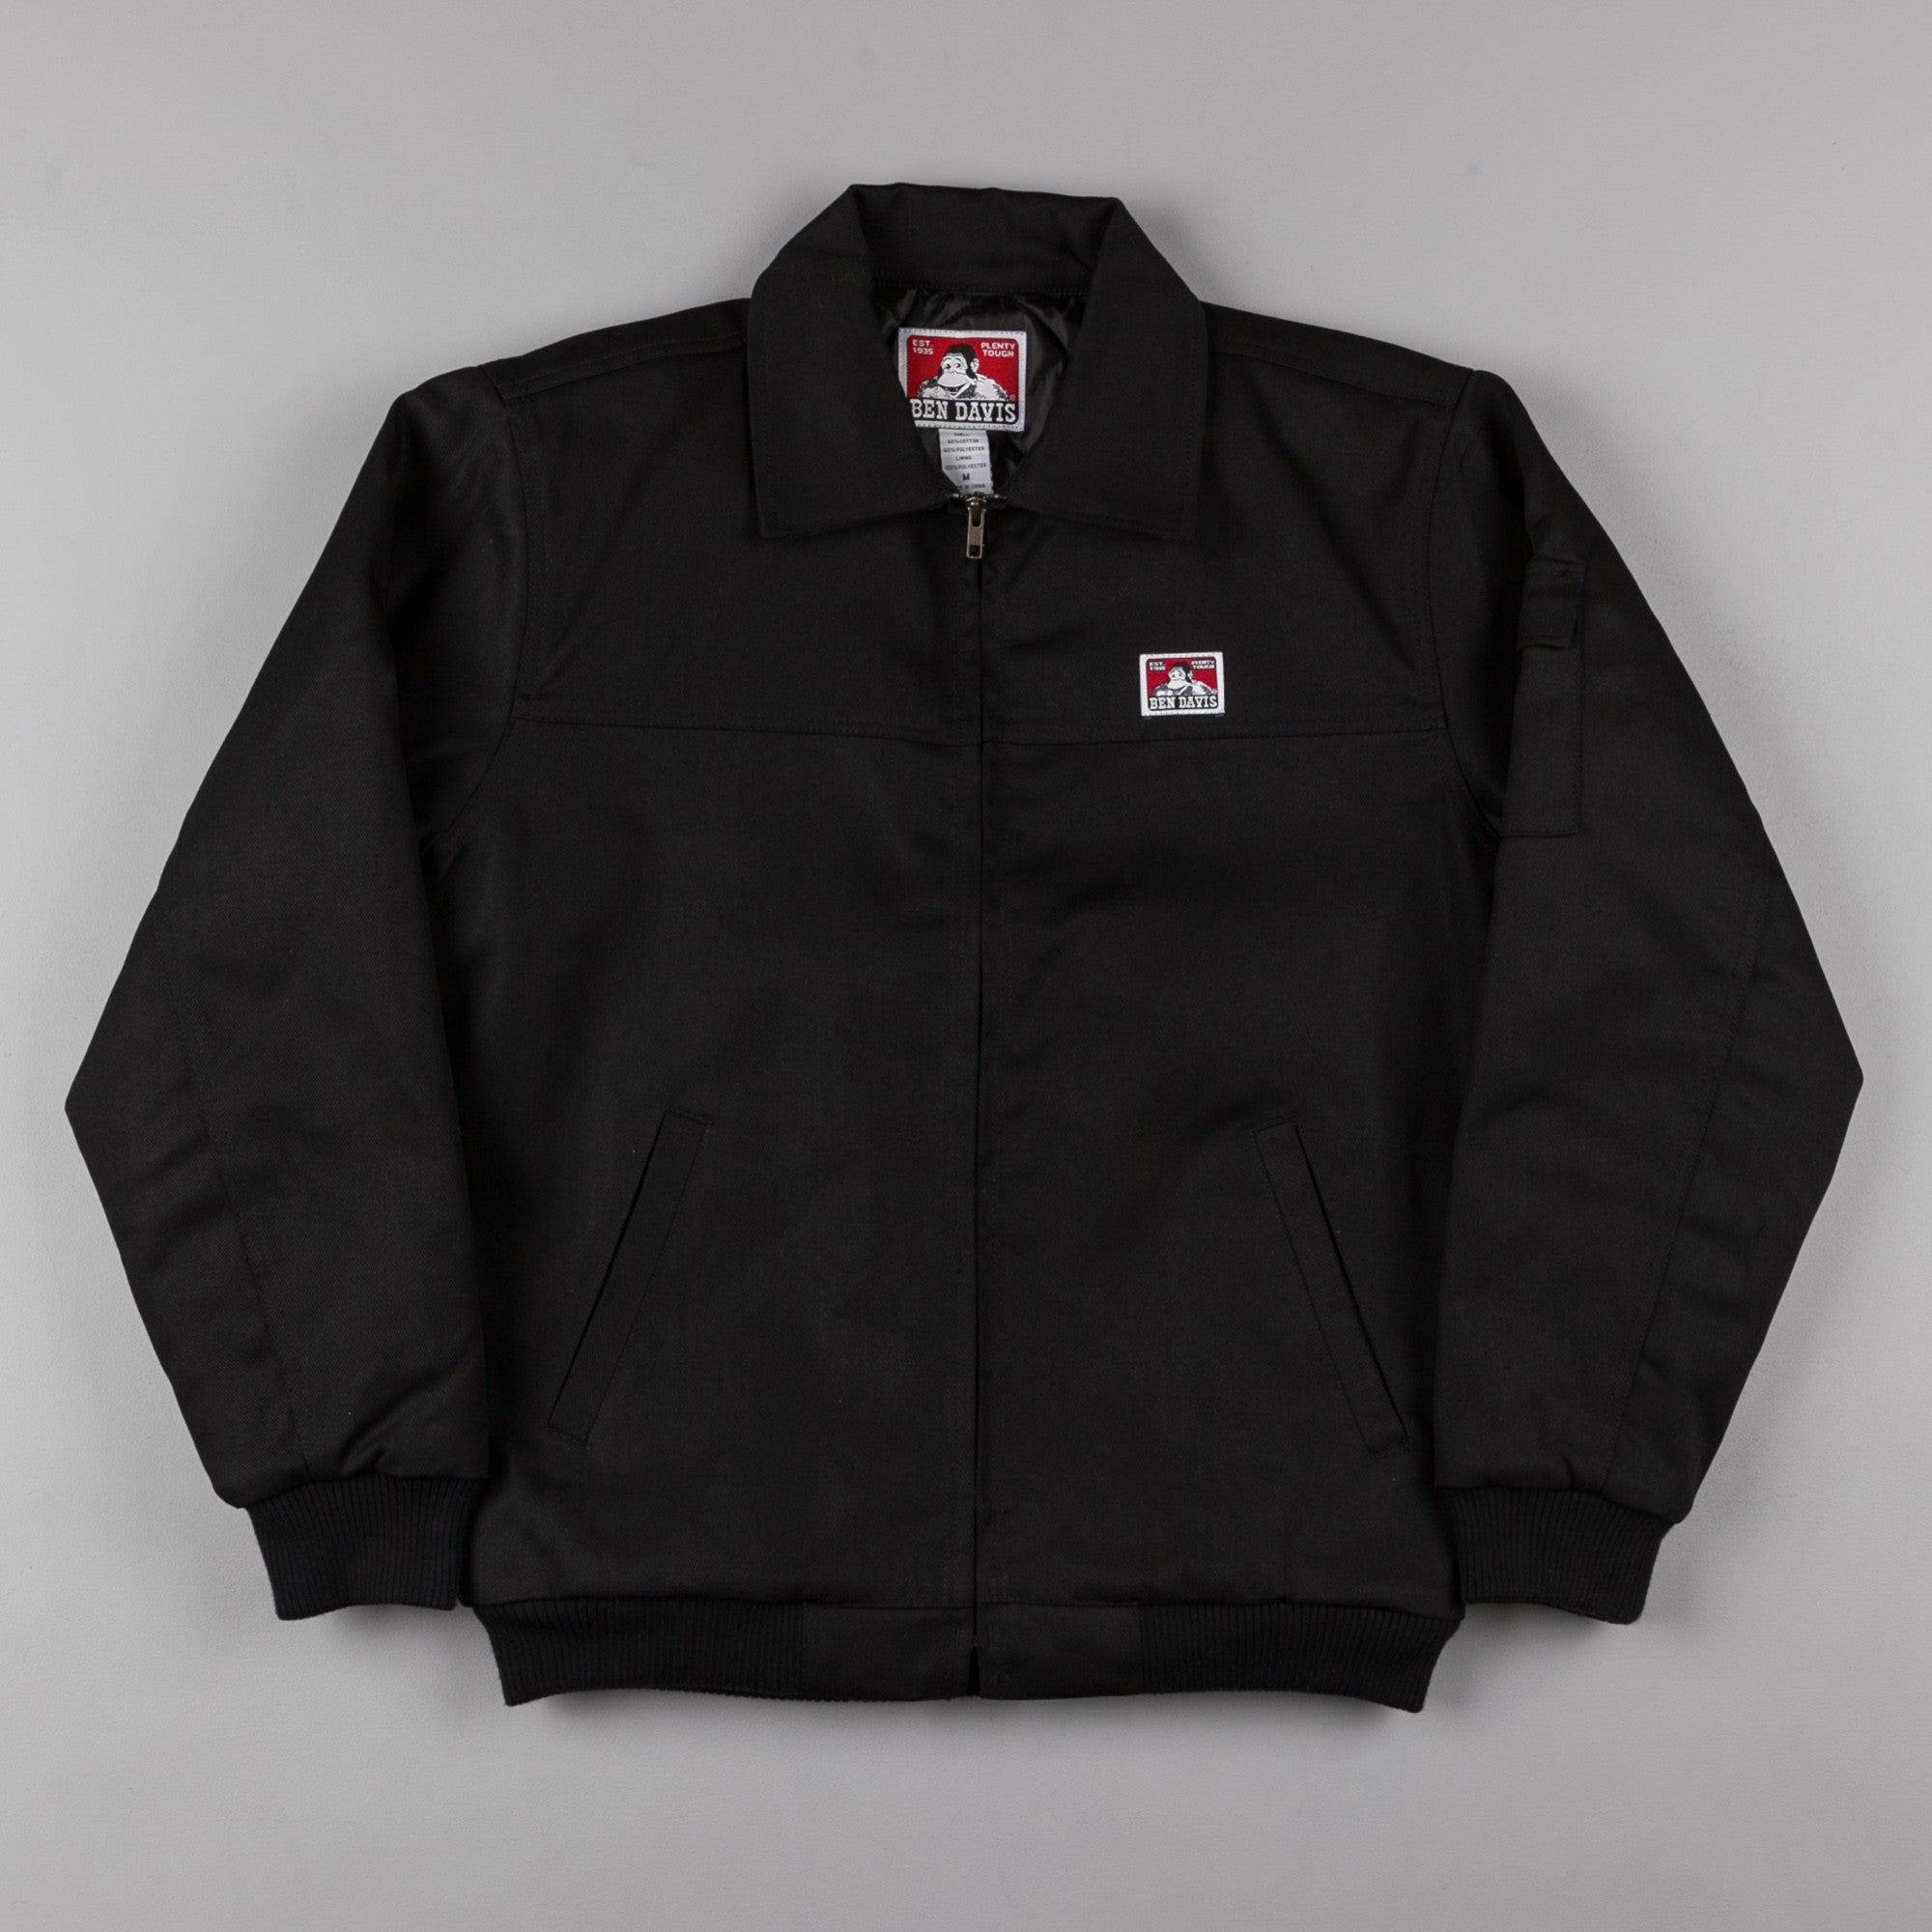 Ben Davis Mechanics Jacket - Black